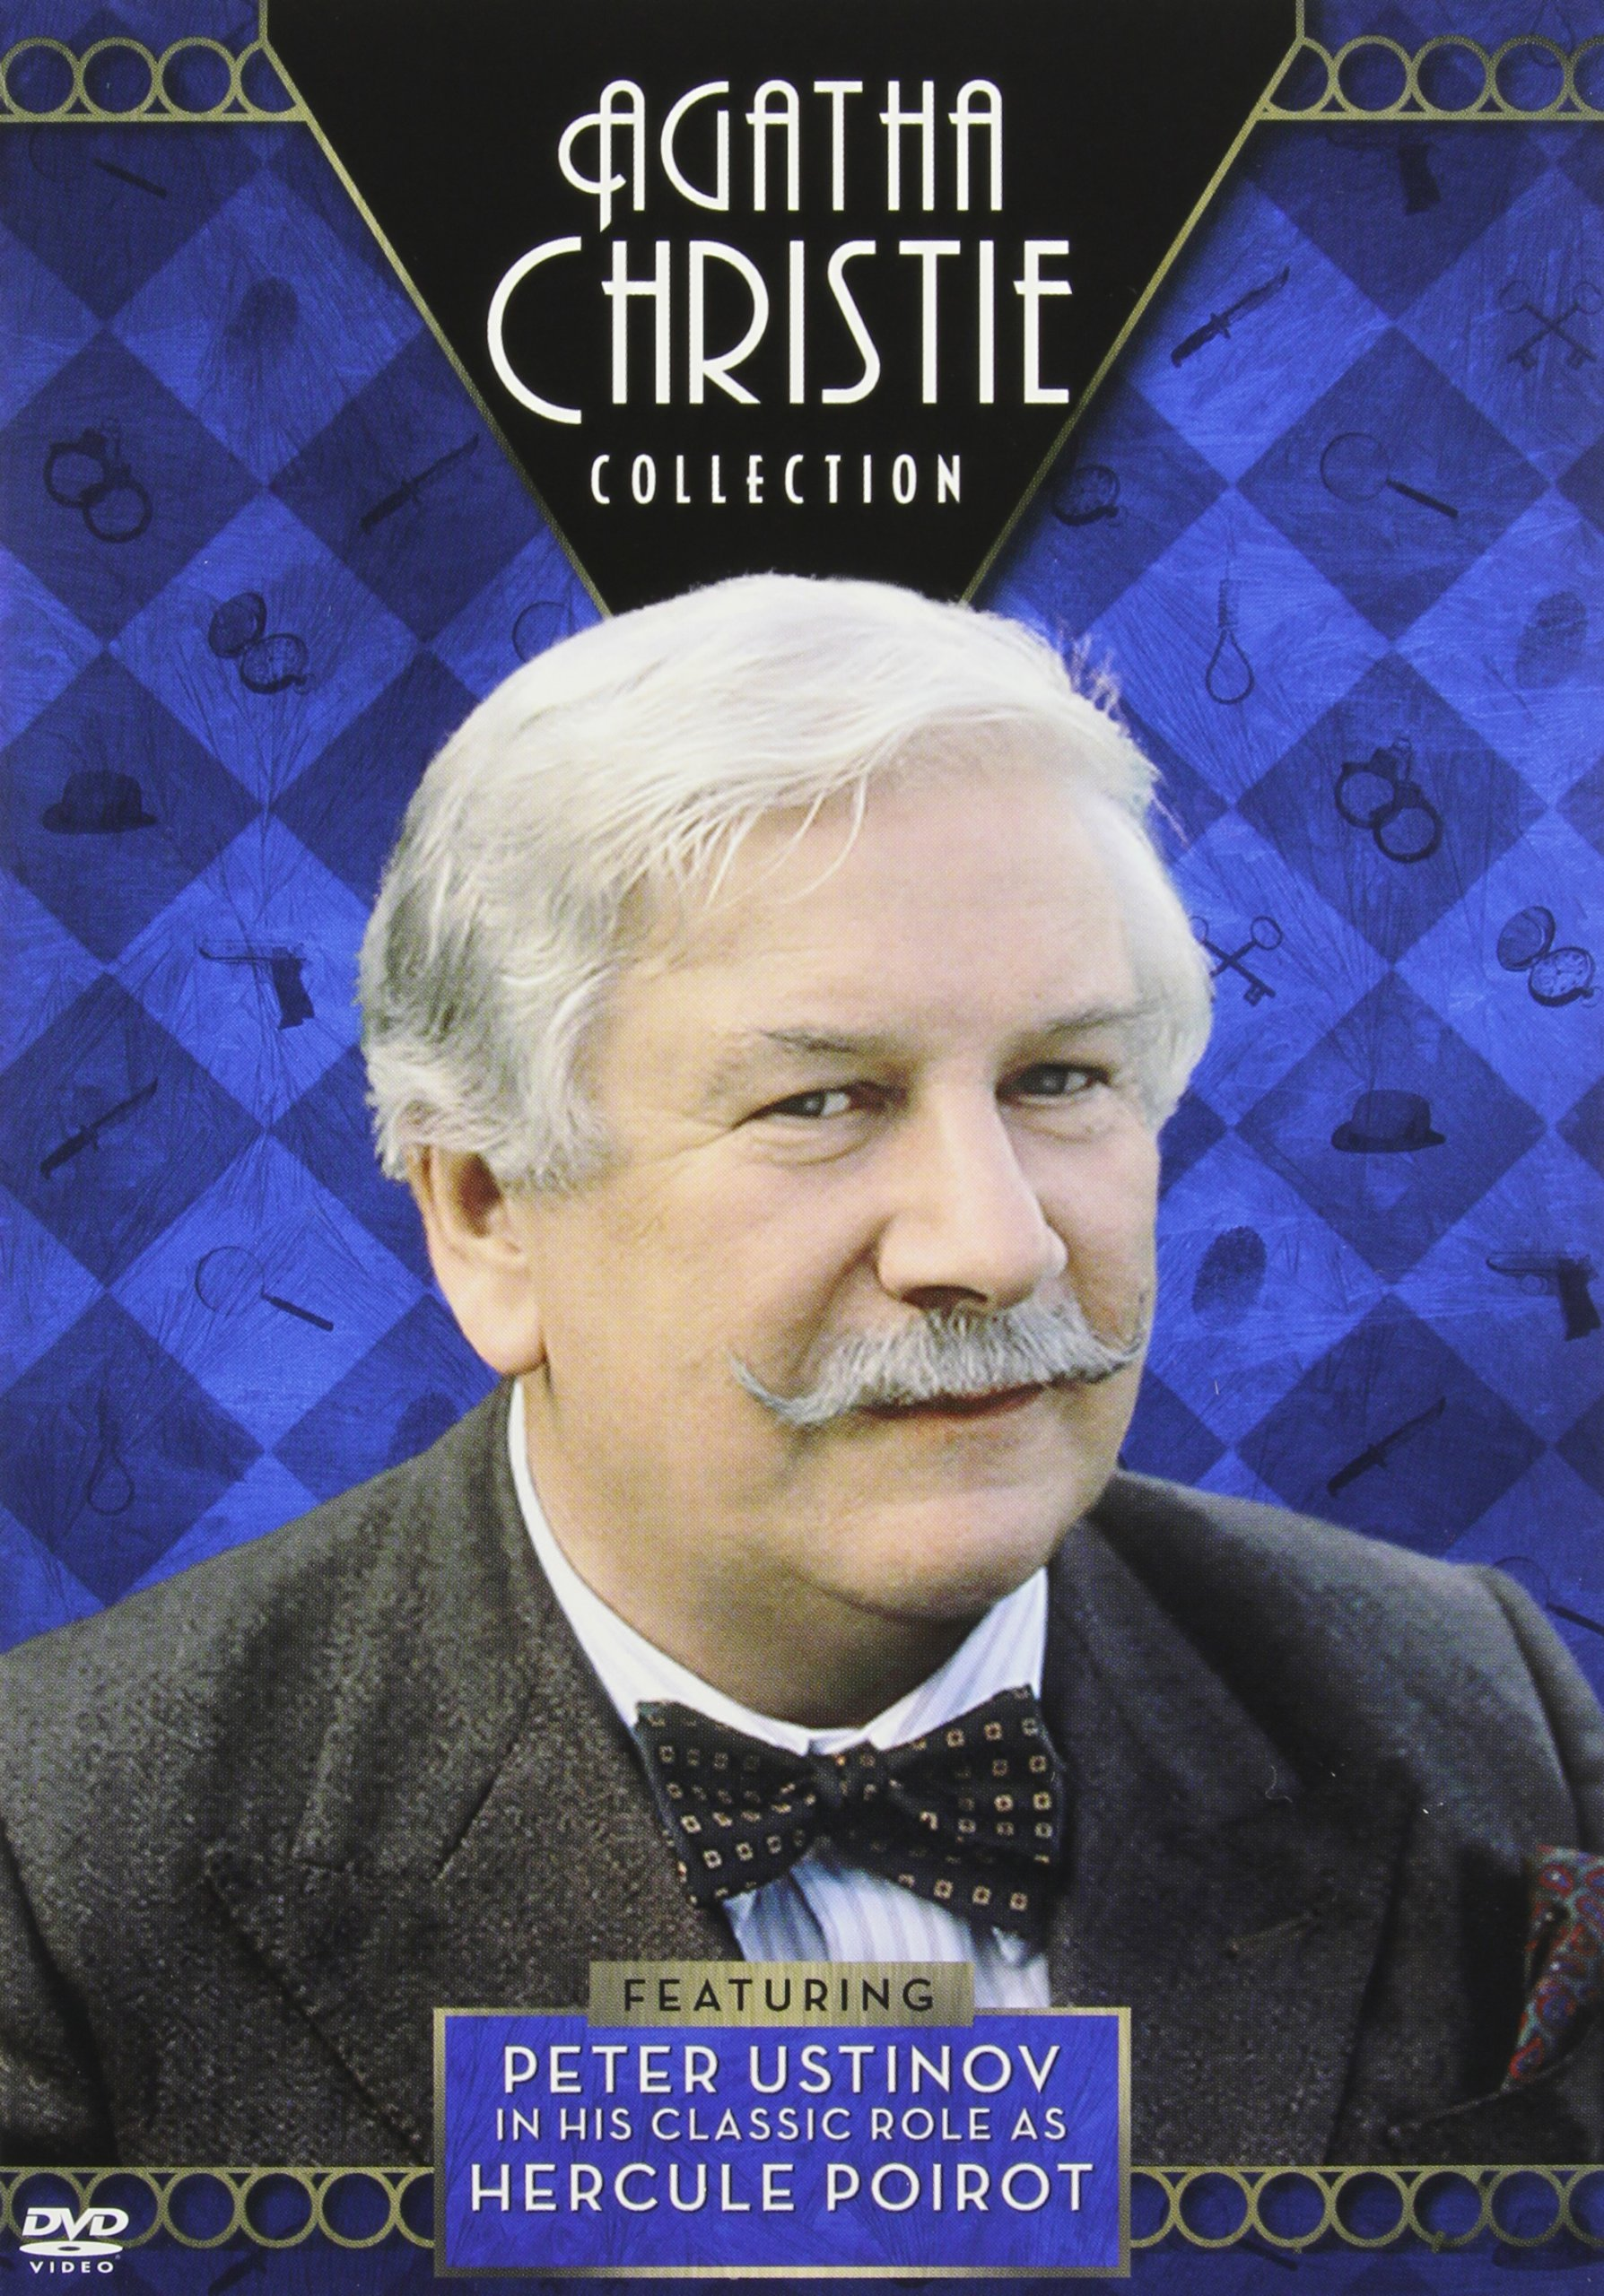 Agatha Christie Collection (Dead Man's Folly / Murder in Three Acts / Thirteen at Dinner)